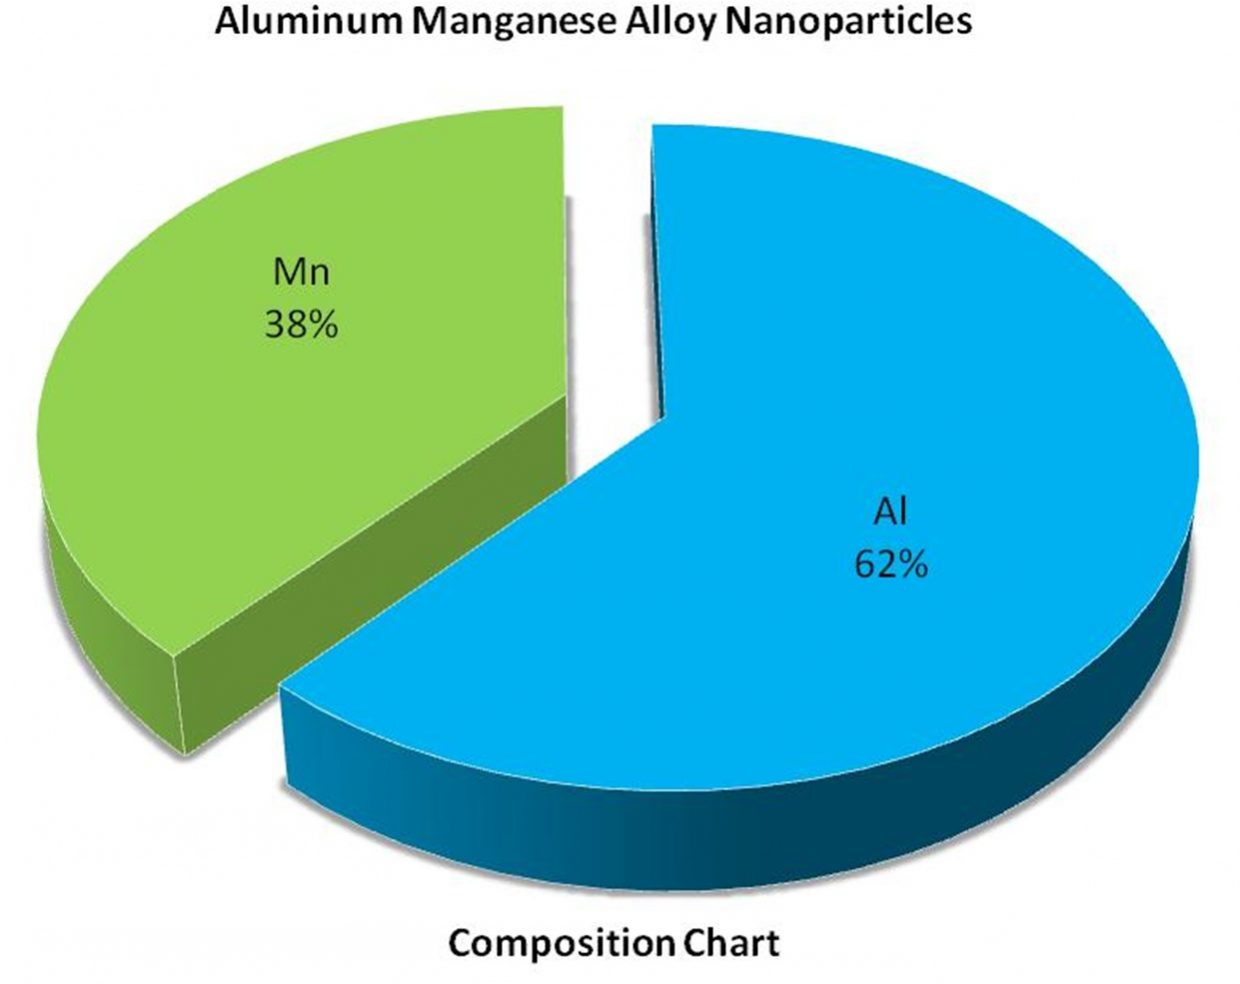 Composition Chart - Al:Mn Alloy Nanoparticles